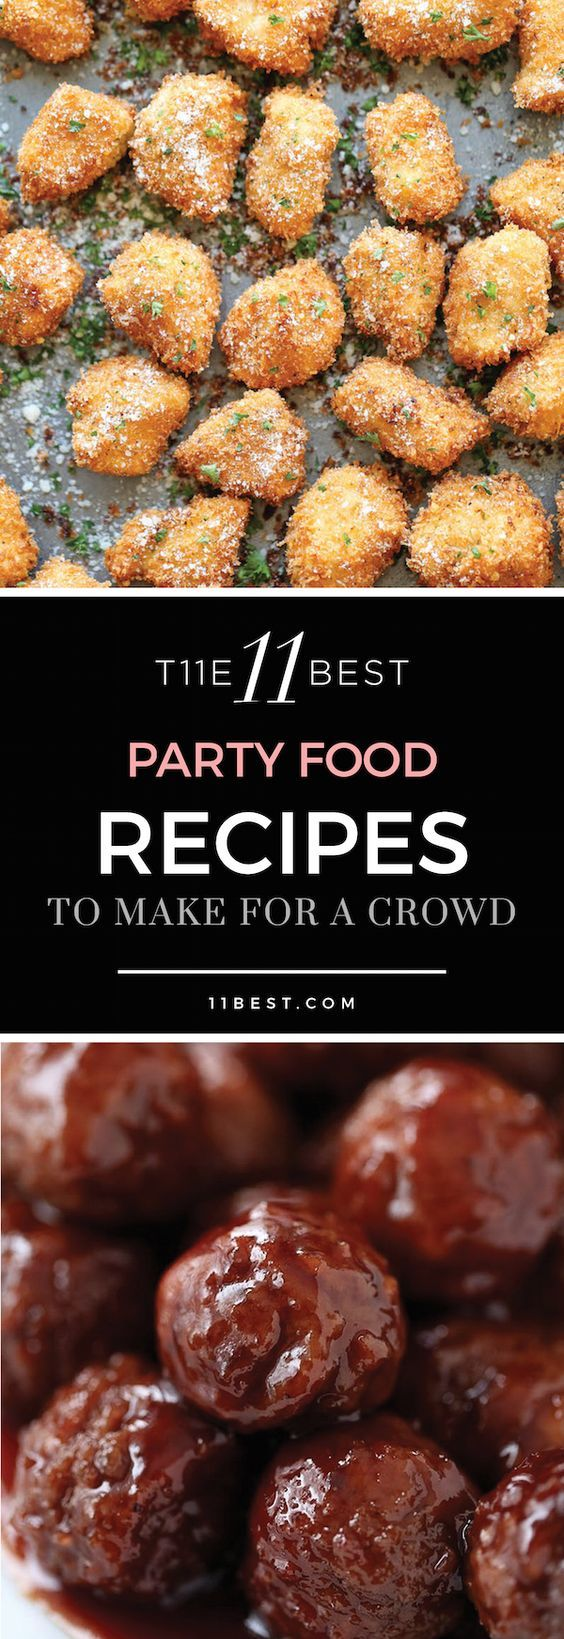 The 11 Best Party Food Recipes